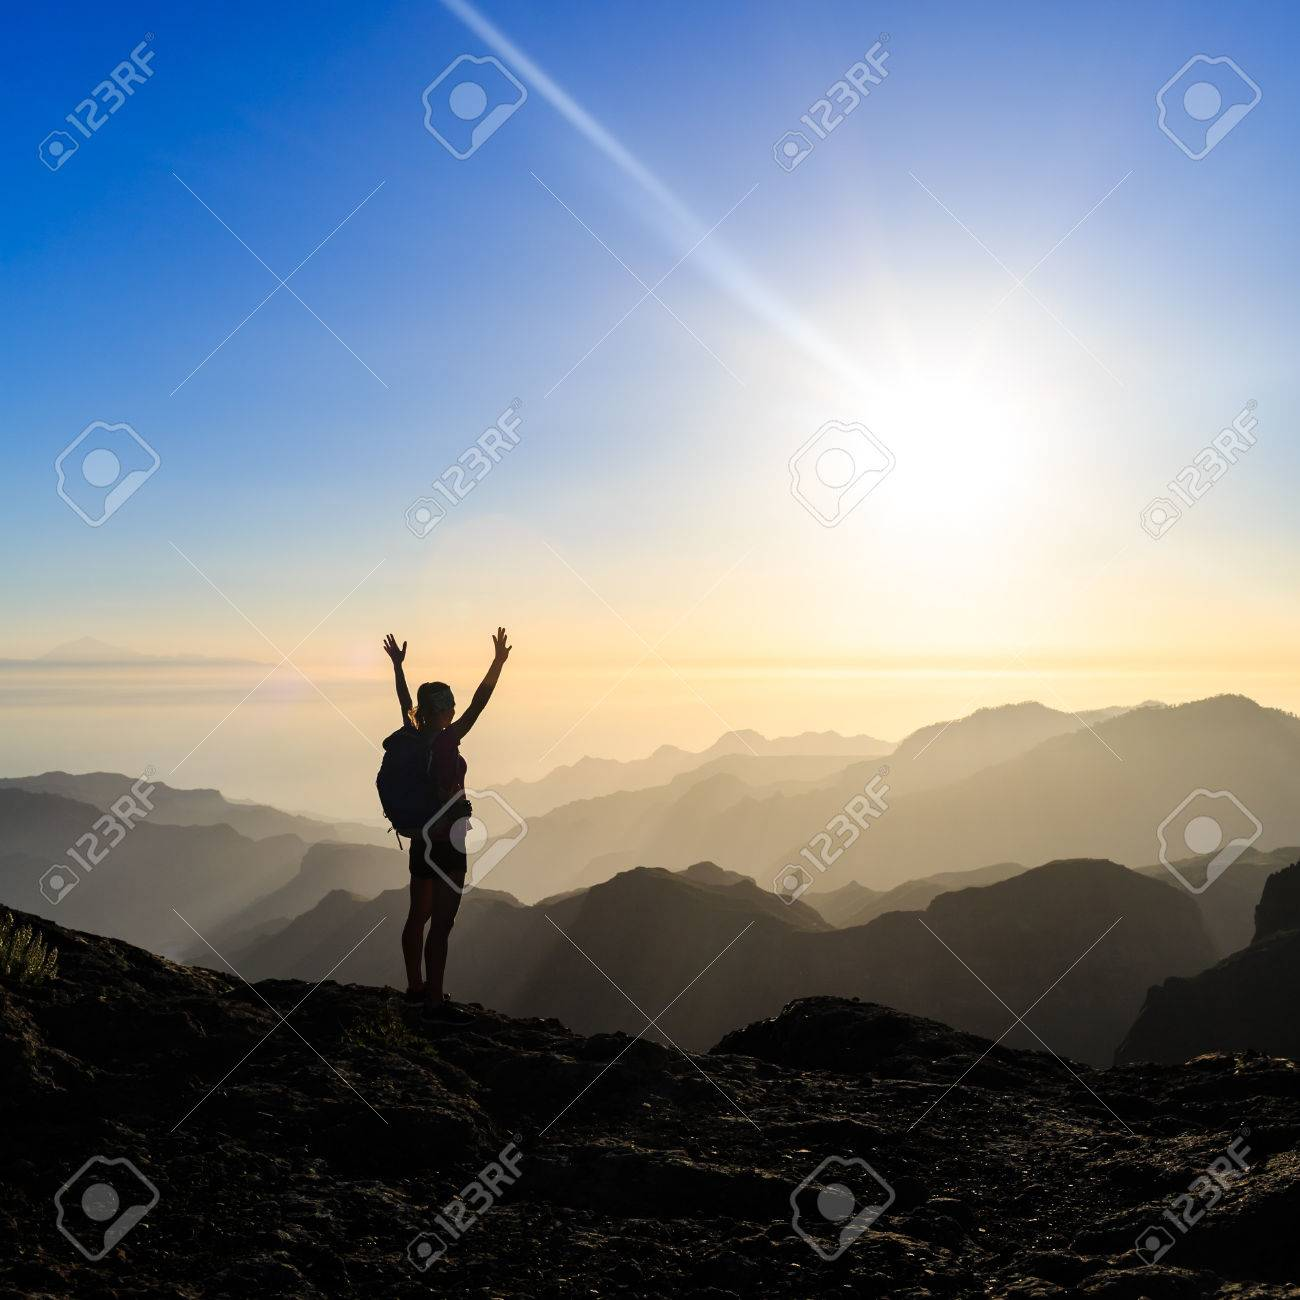 Woman successful hiking climbing silhouette in mountains, motivation and inspiration in beautiful sunset and ocean. Female hiker with arms up outstretched on mountain top looking at beautiful night sunset inspirational landscape. - 49609434